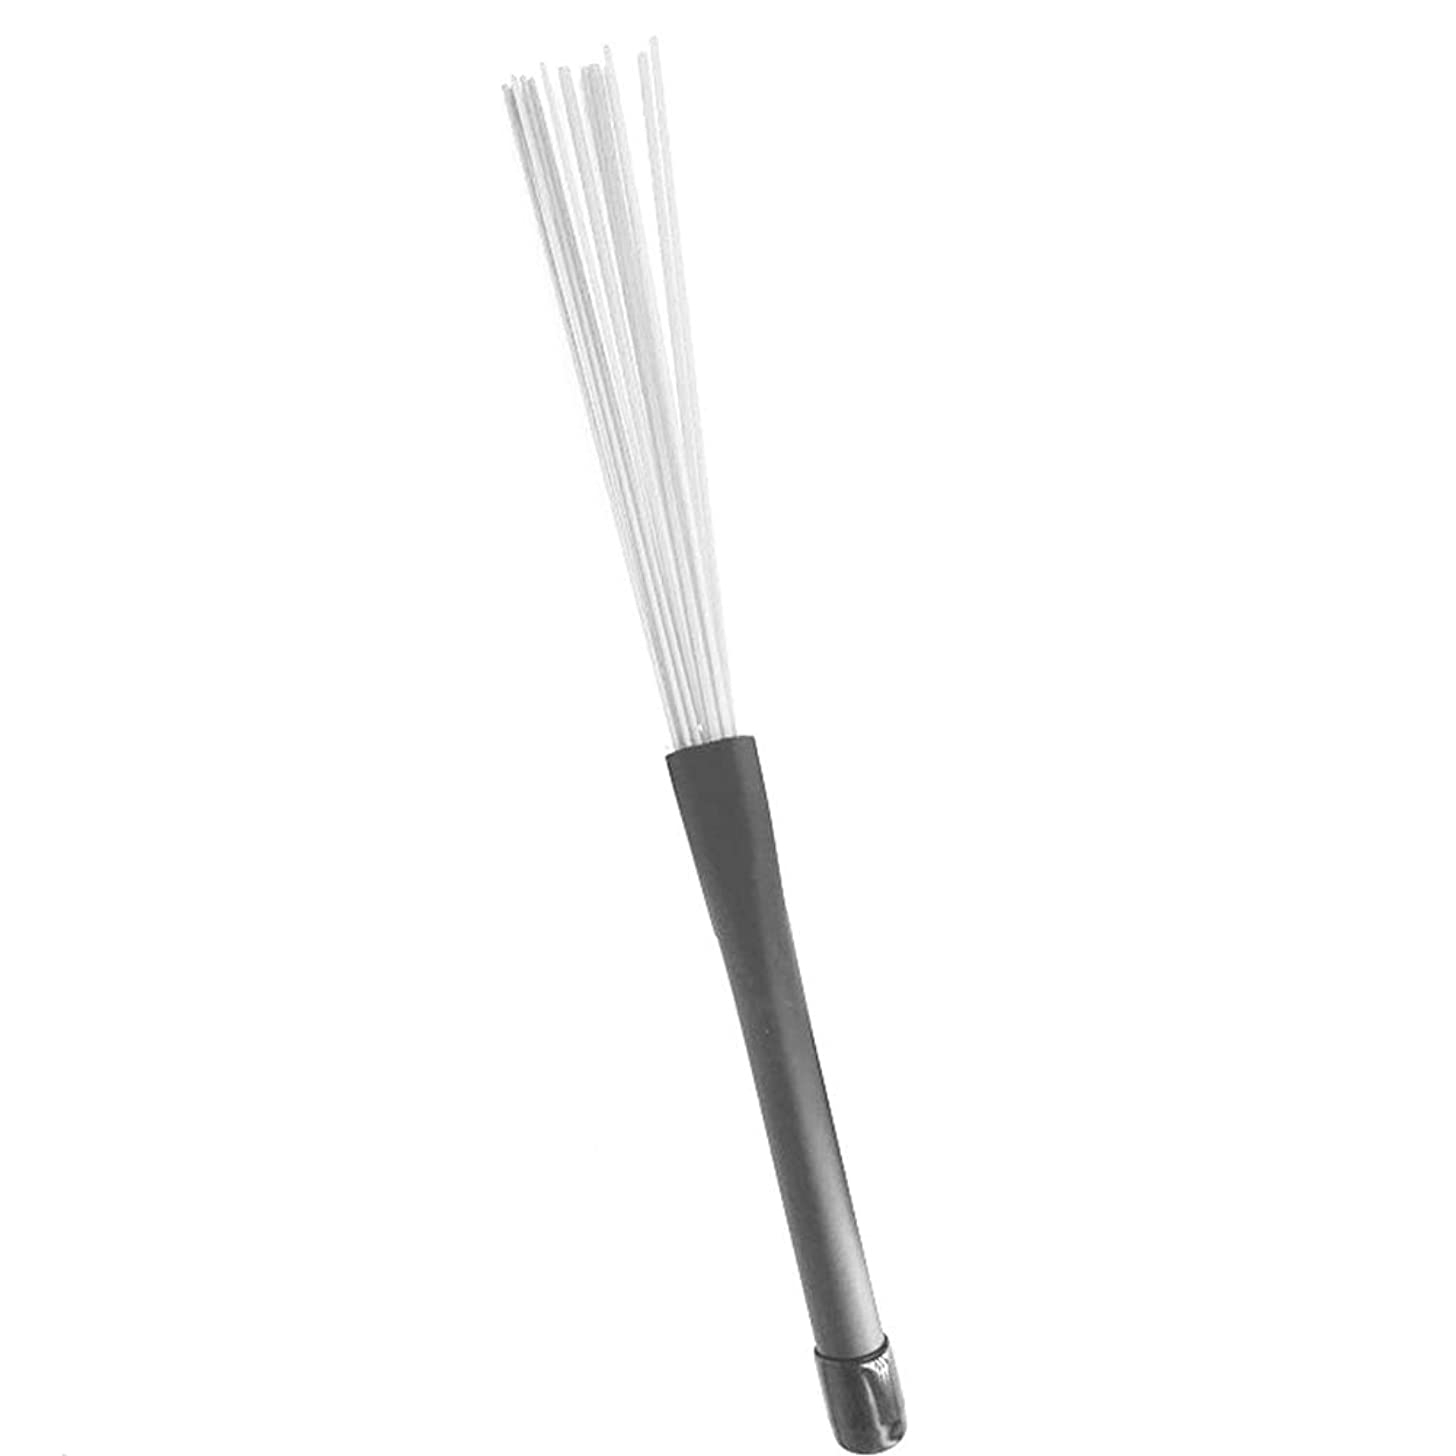 eroute66 Lightweight Nylon Drumsticks Drum Sticks Music Accessory Part for Drummer A Pair of Drum Brushes White